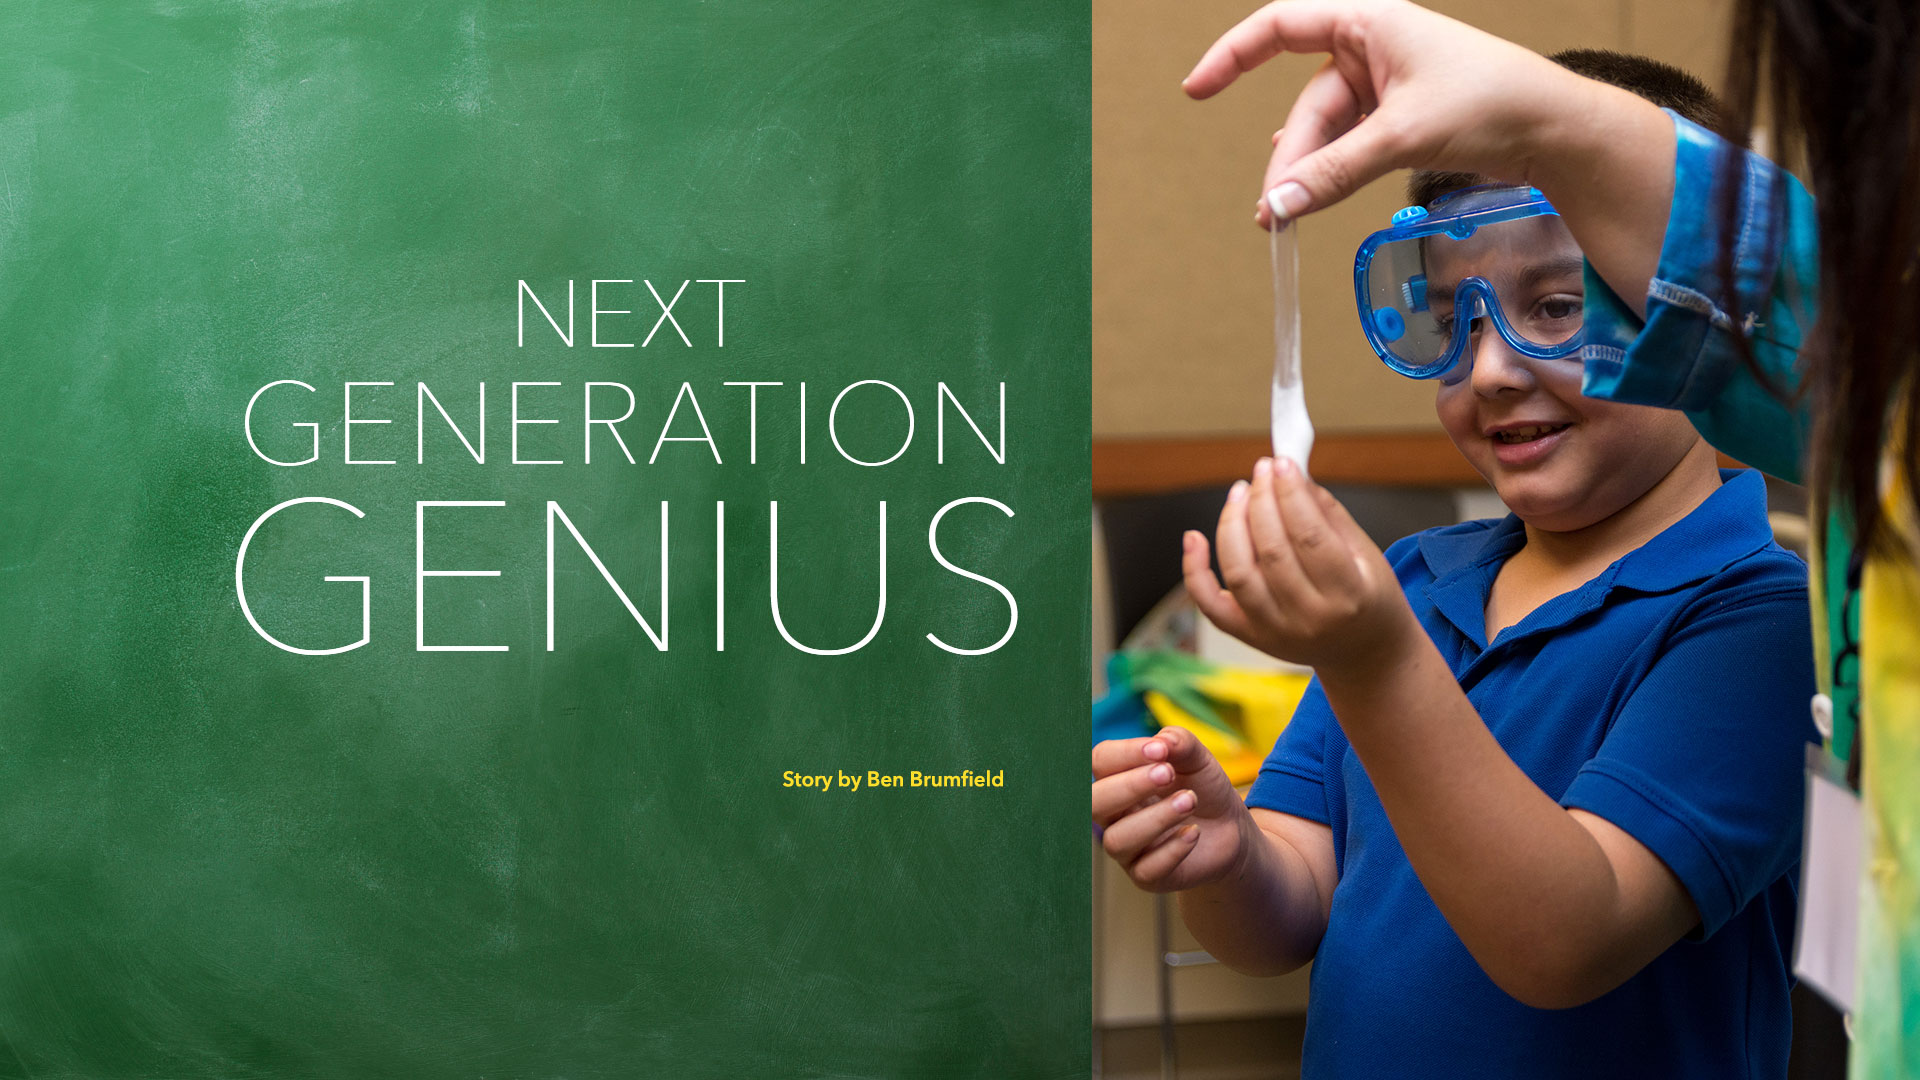 Next Generation Genius - Story by Ben Brumfield